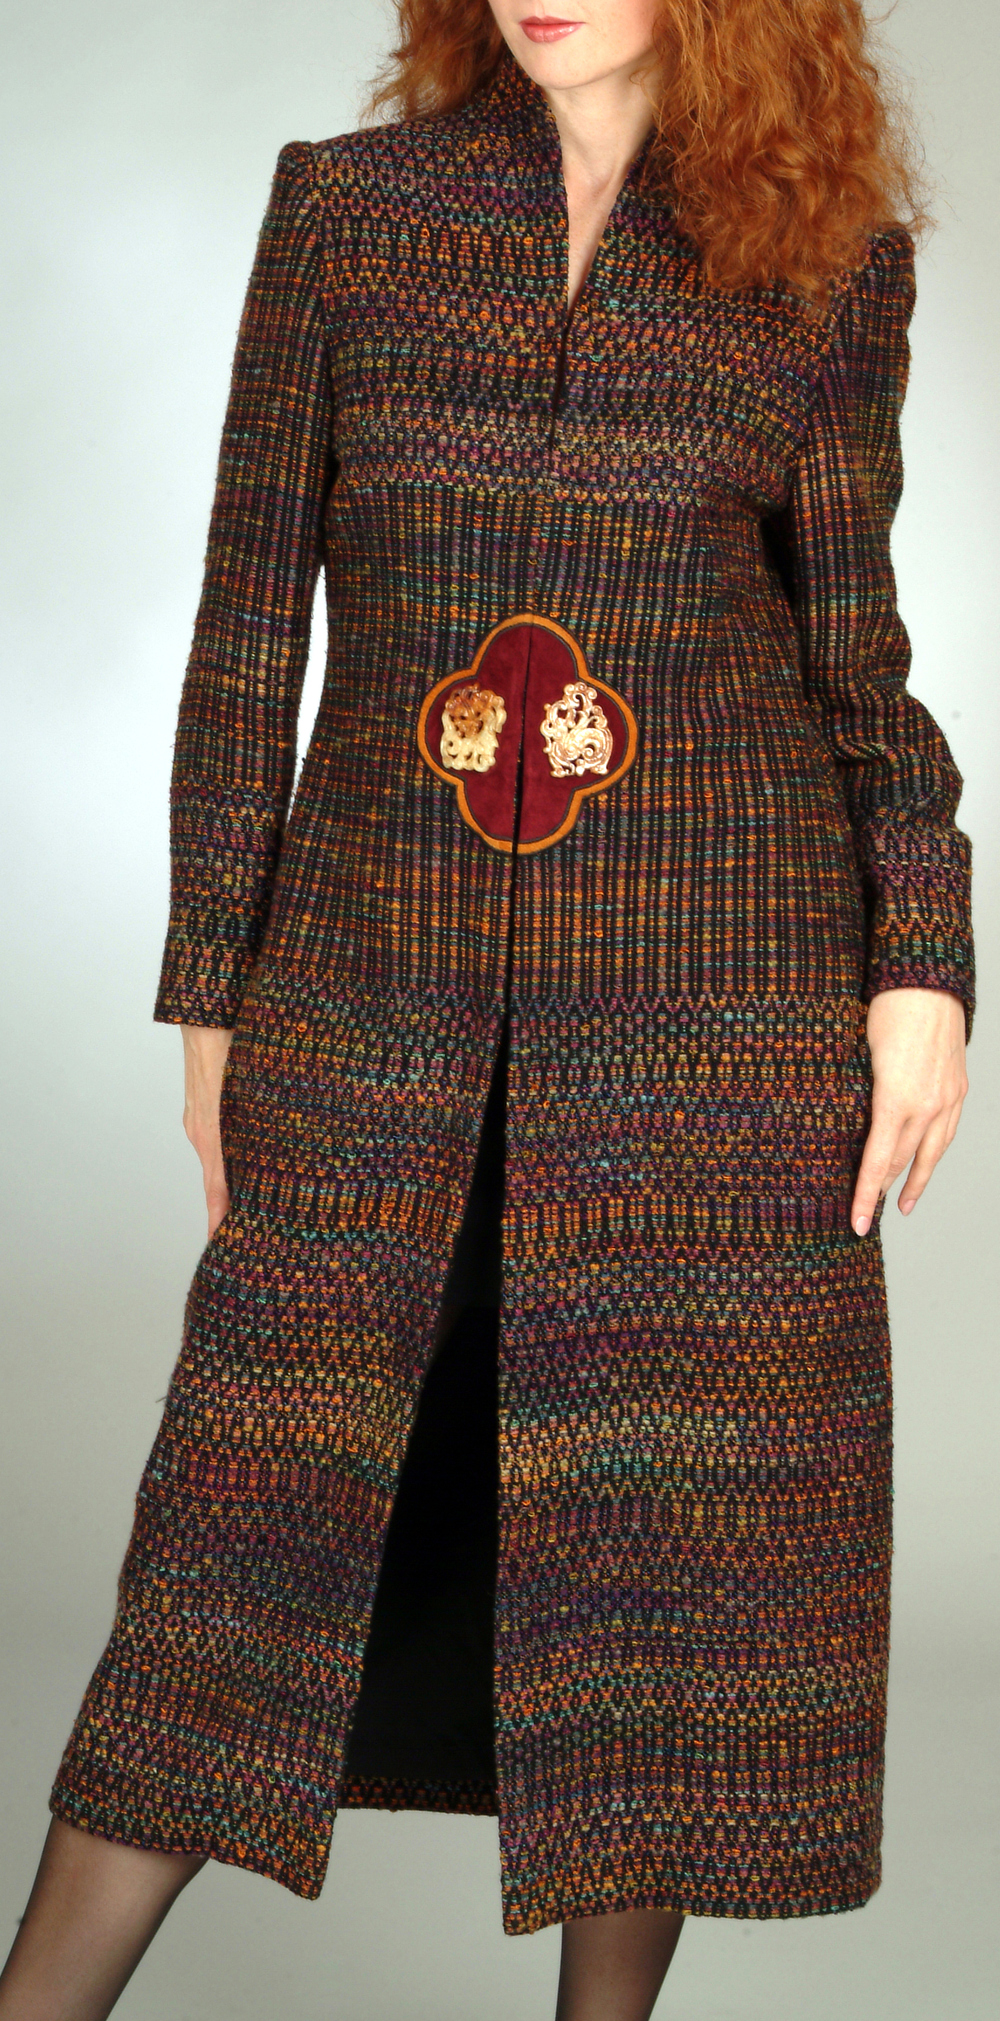 Handwoven Coat, Business Apparel, Kathleen Weir-West 101